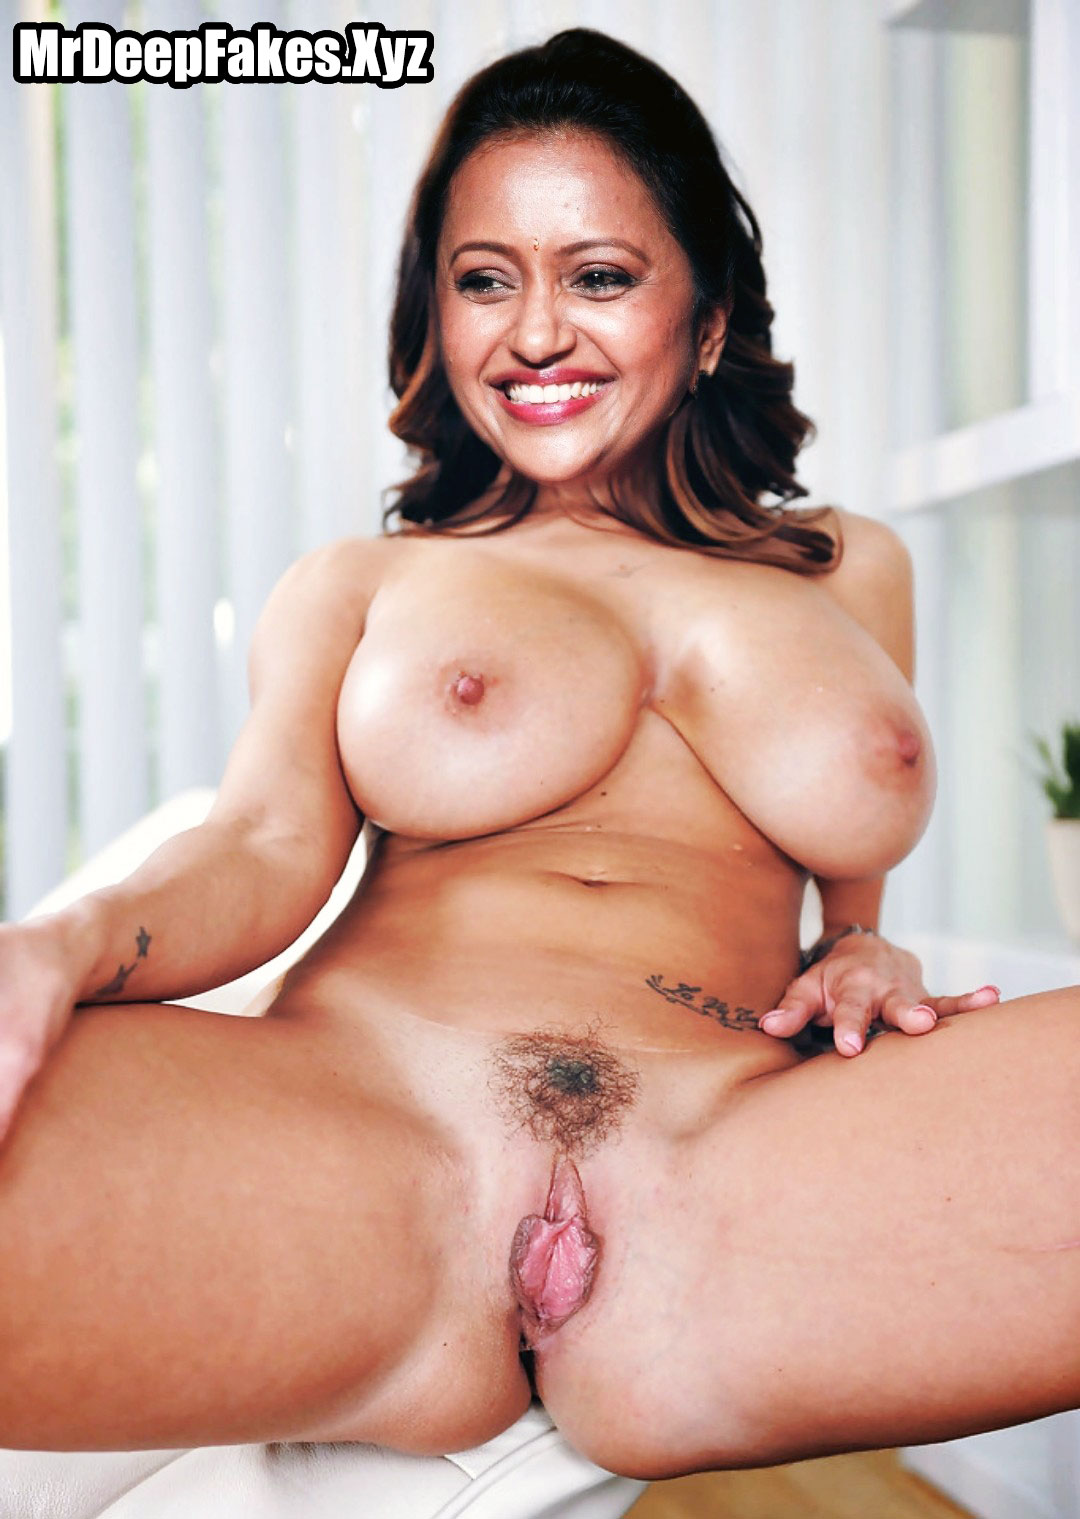 Tv Actress Suma nude body photo without dress big boobs shaved pussy